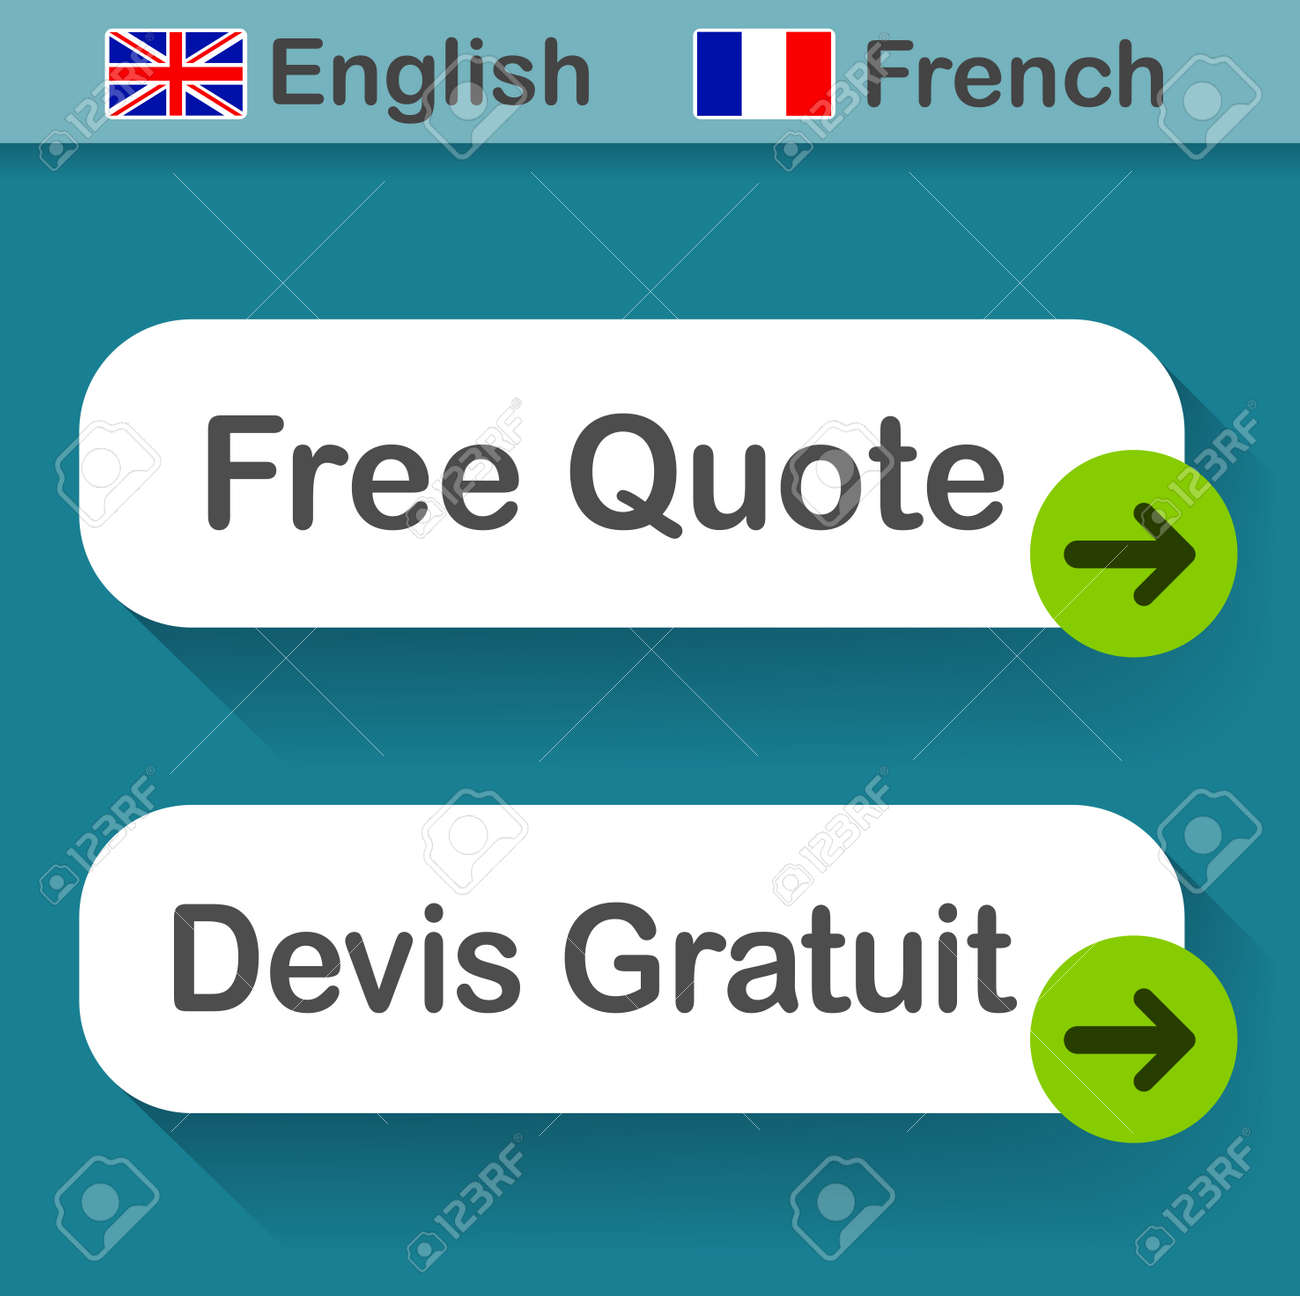 123Rf Gratuit illustration of free quote button with french translation royalty